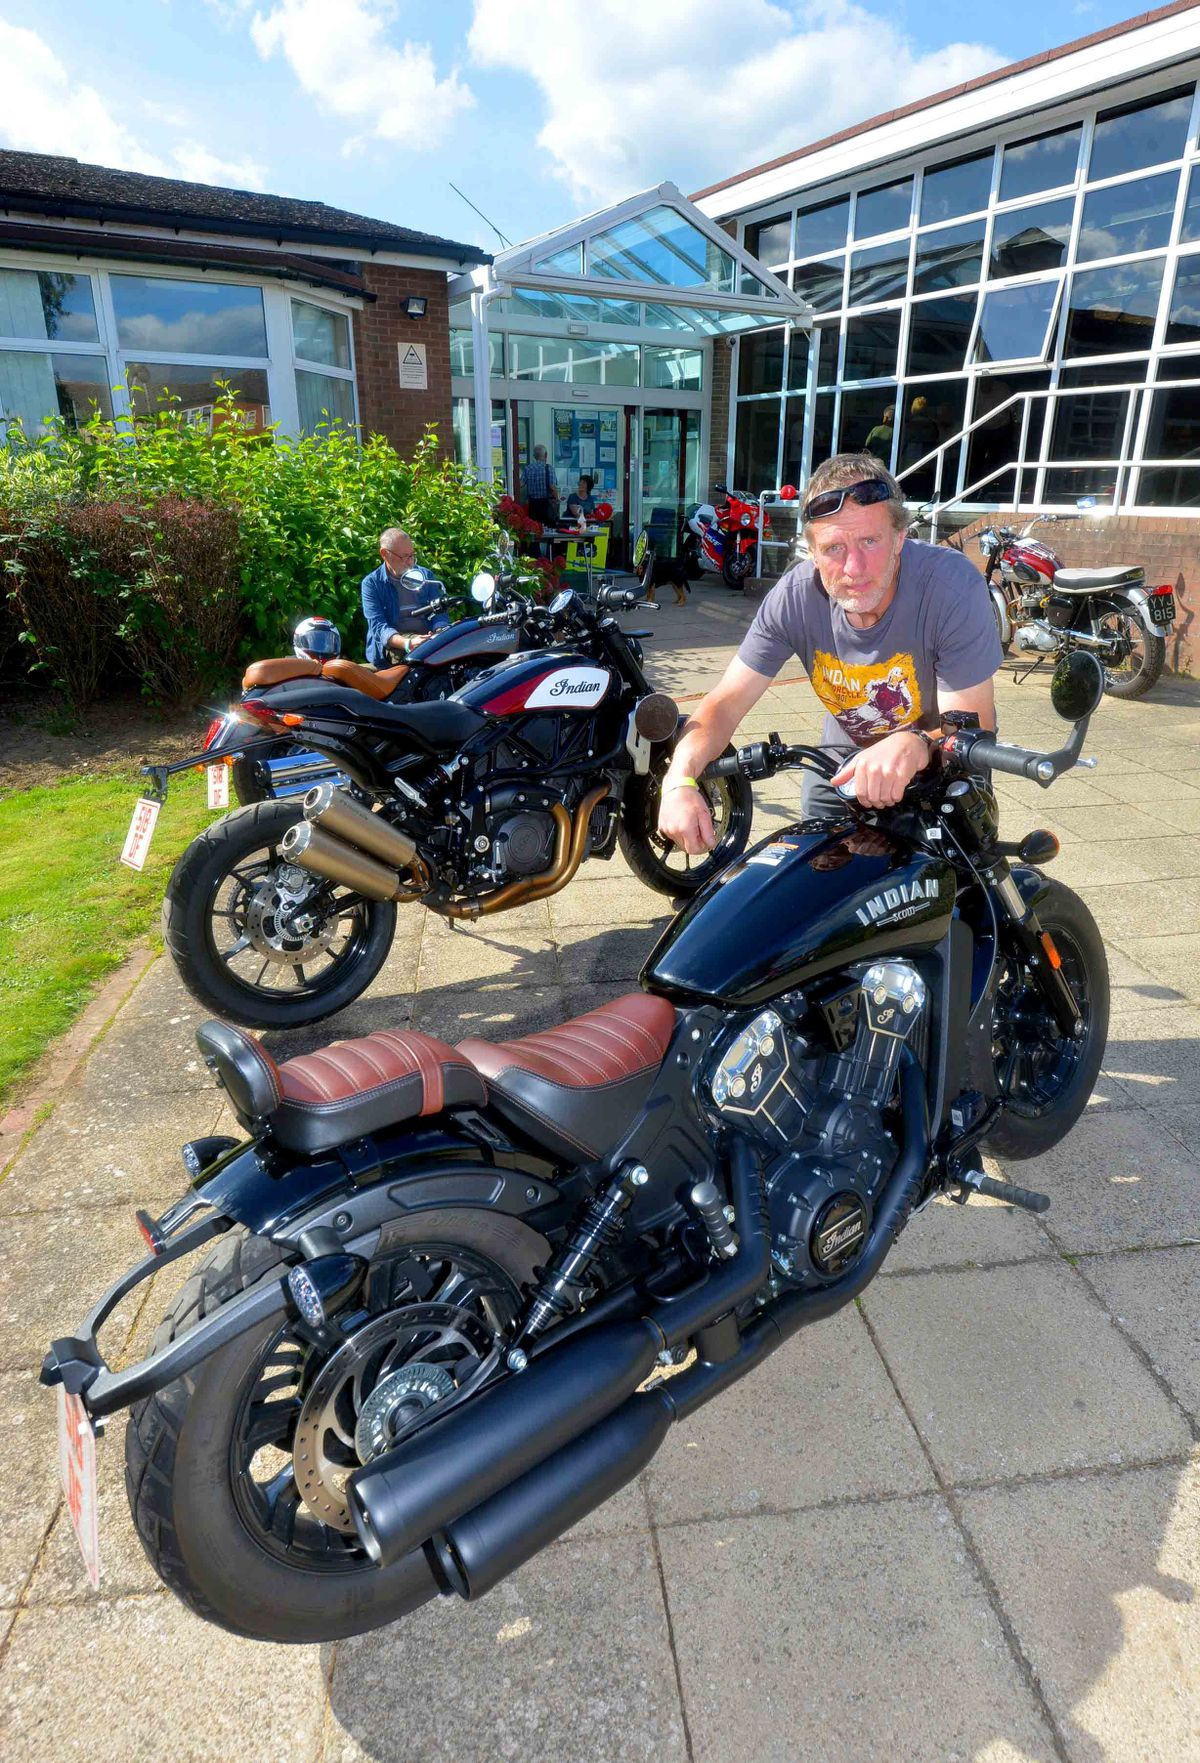 Mark Grinnall from Stourport with a 2019 Indian Scout Bobber